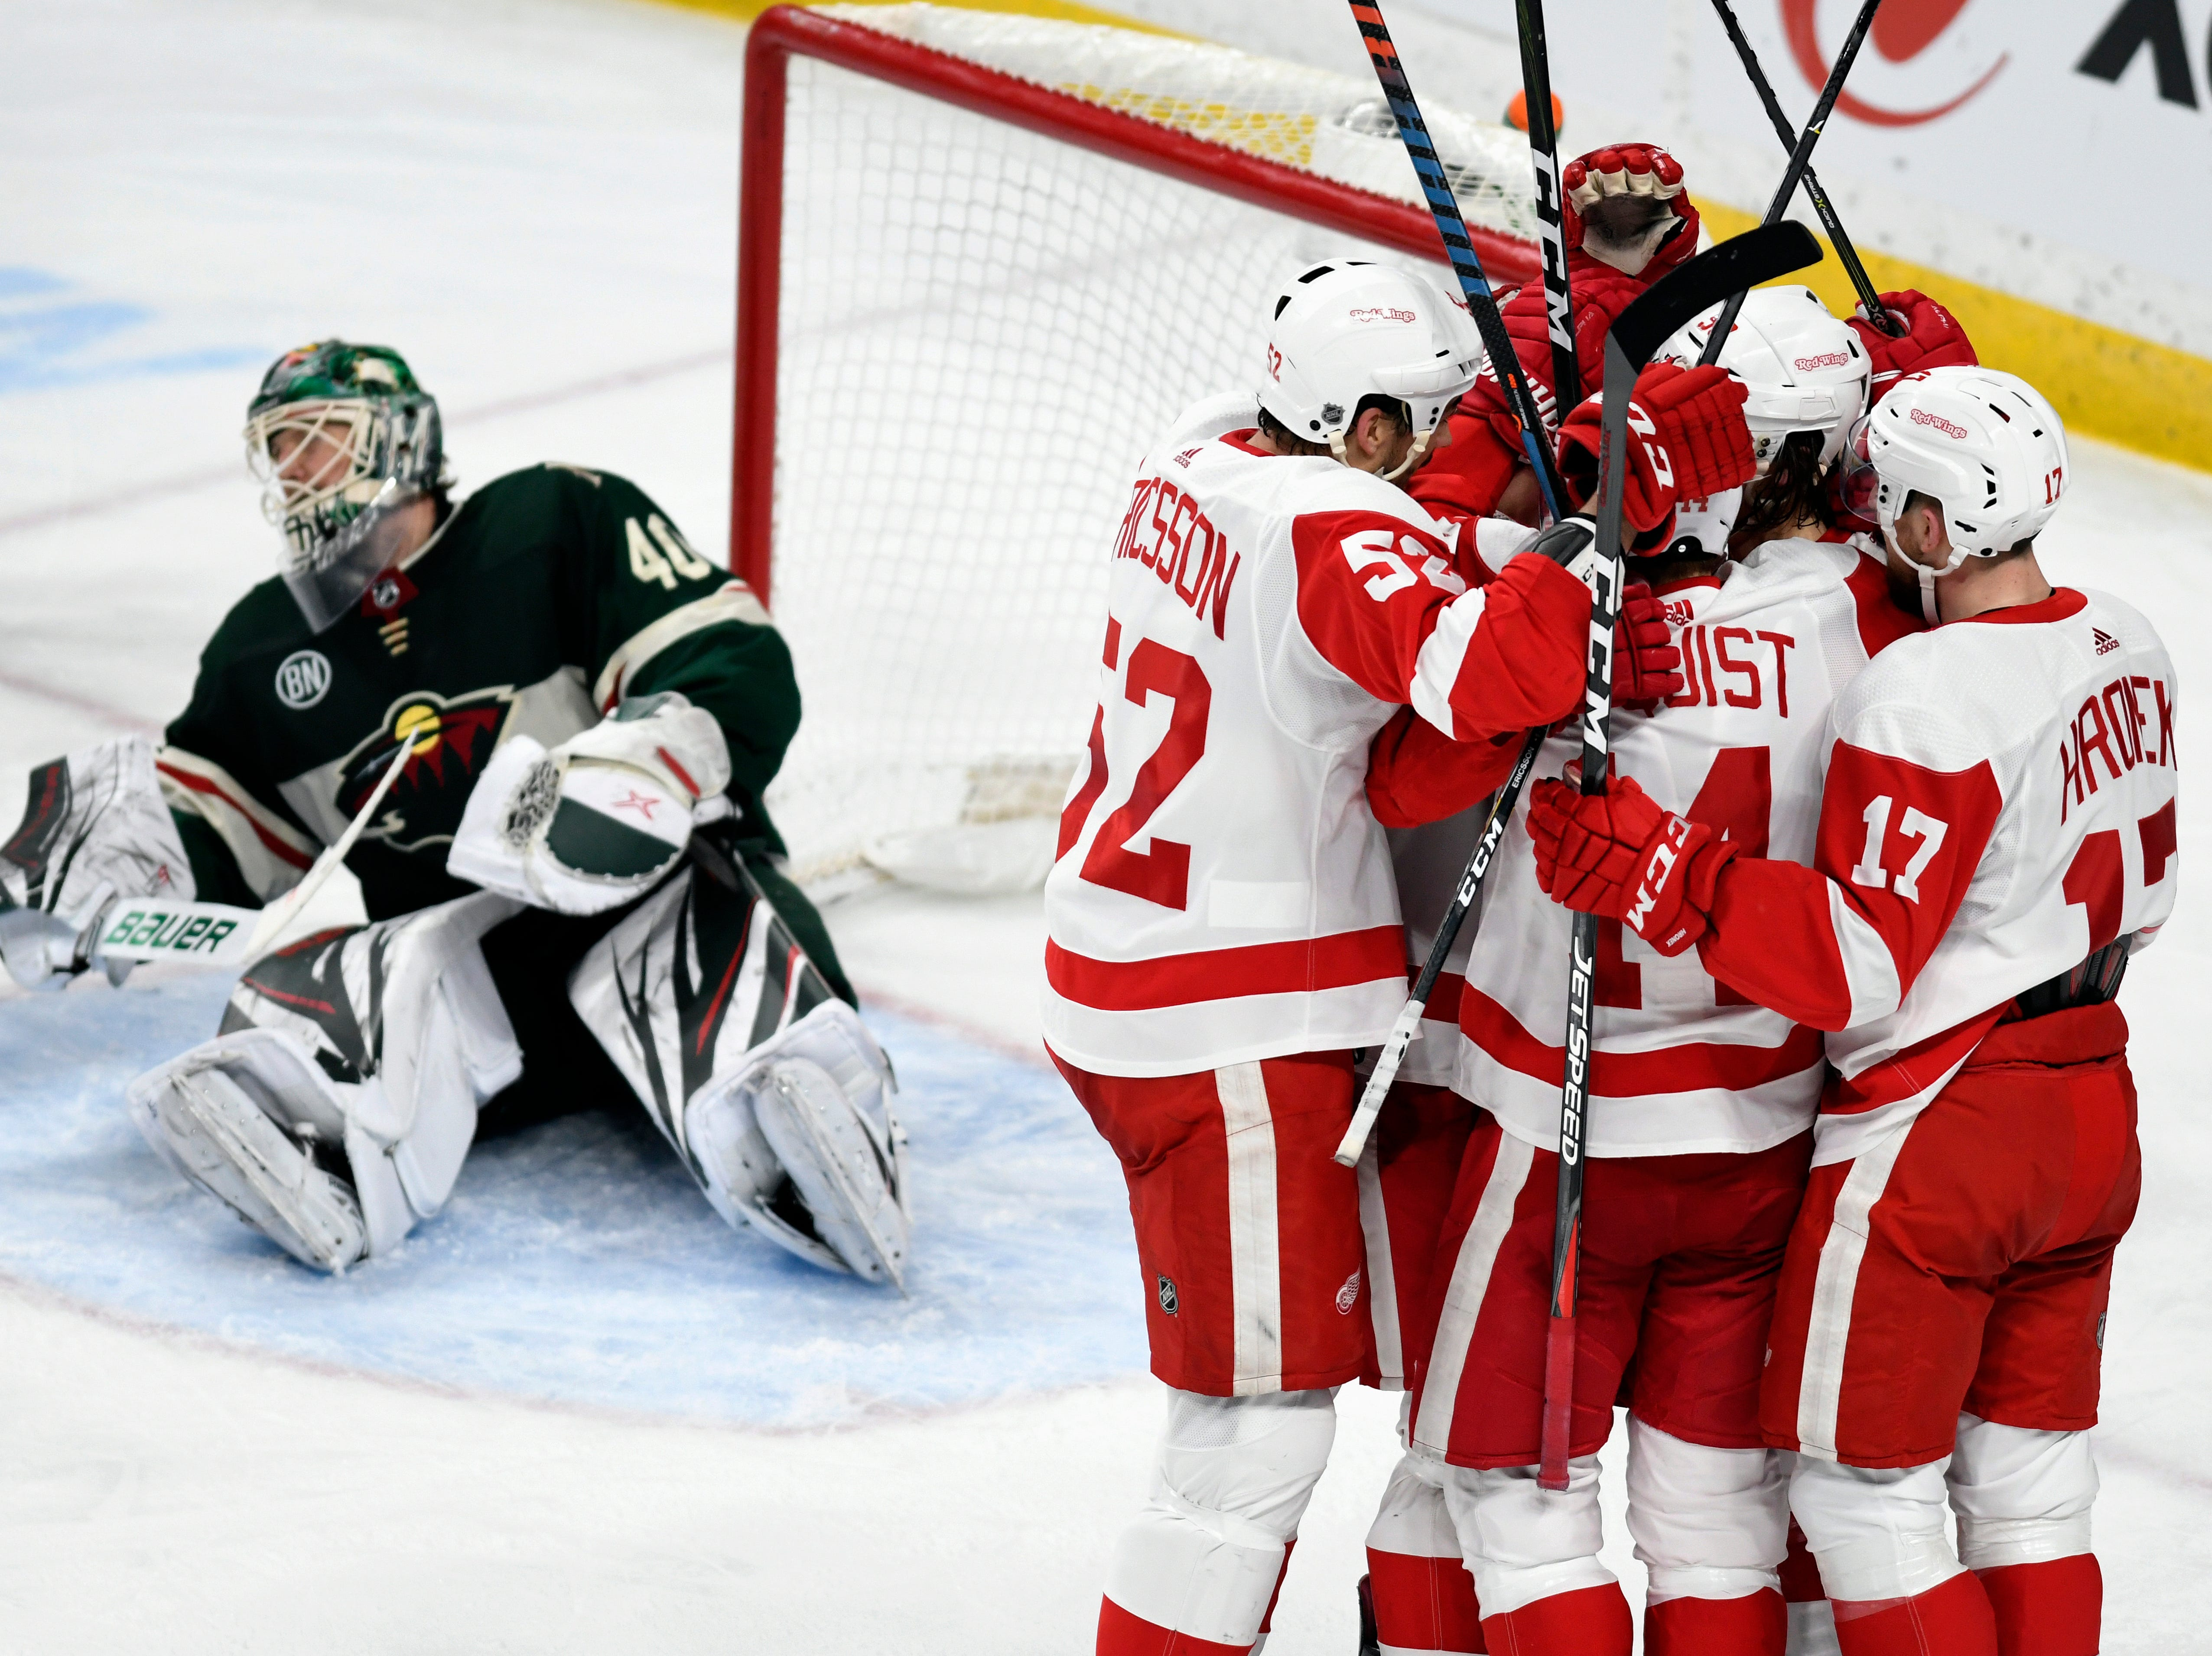 Detroit Red Wings mob teammate Tyler Bertuzzi after he scored his third goal of the game for a hat trick, while Minnesota Wild goalie Devan Dubnyk, left, looks away during the third period of an NHL hockey game Saturday, Jan. 12, 2019, in St. Paul, Minn. (AP Photo/Tom Olmscheid)